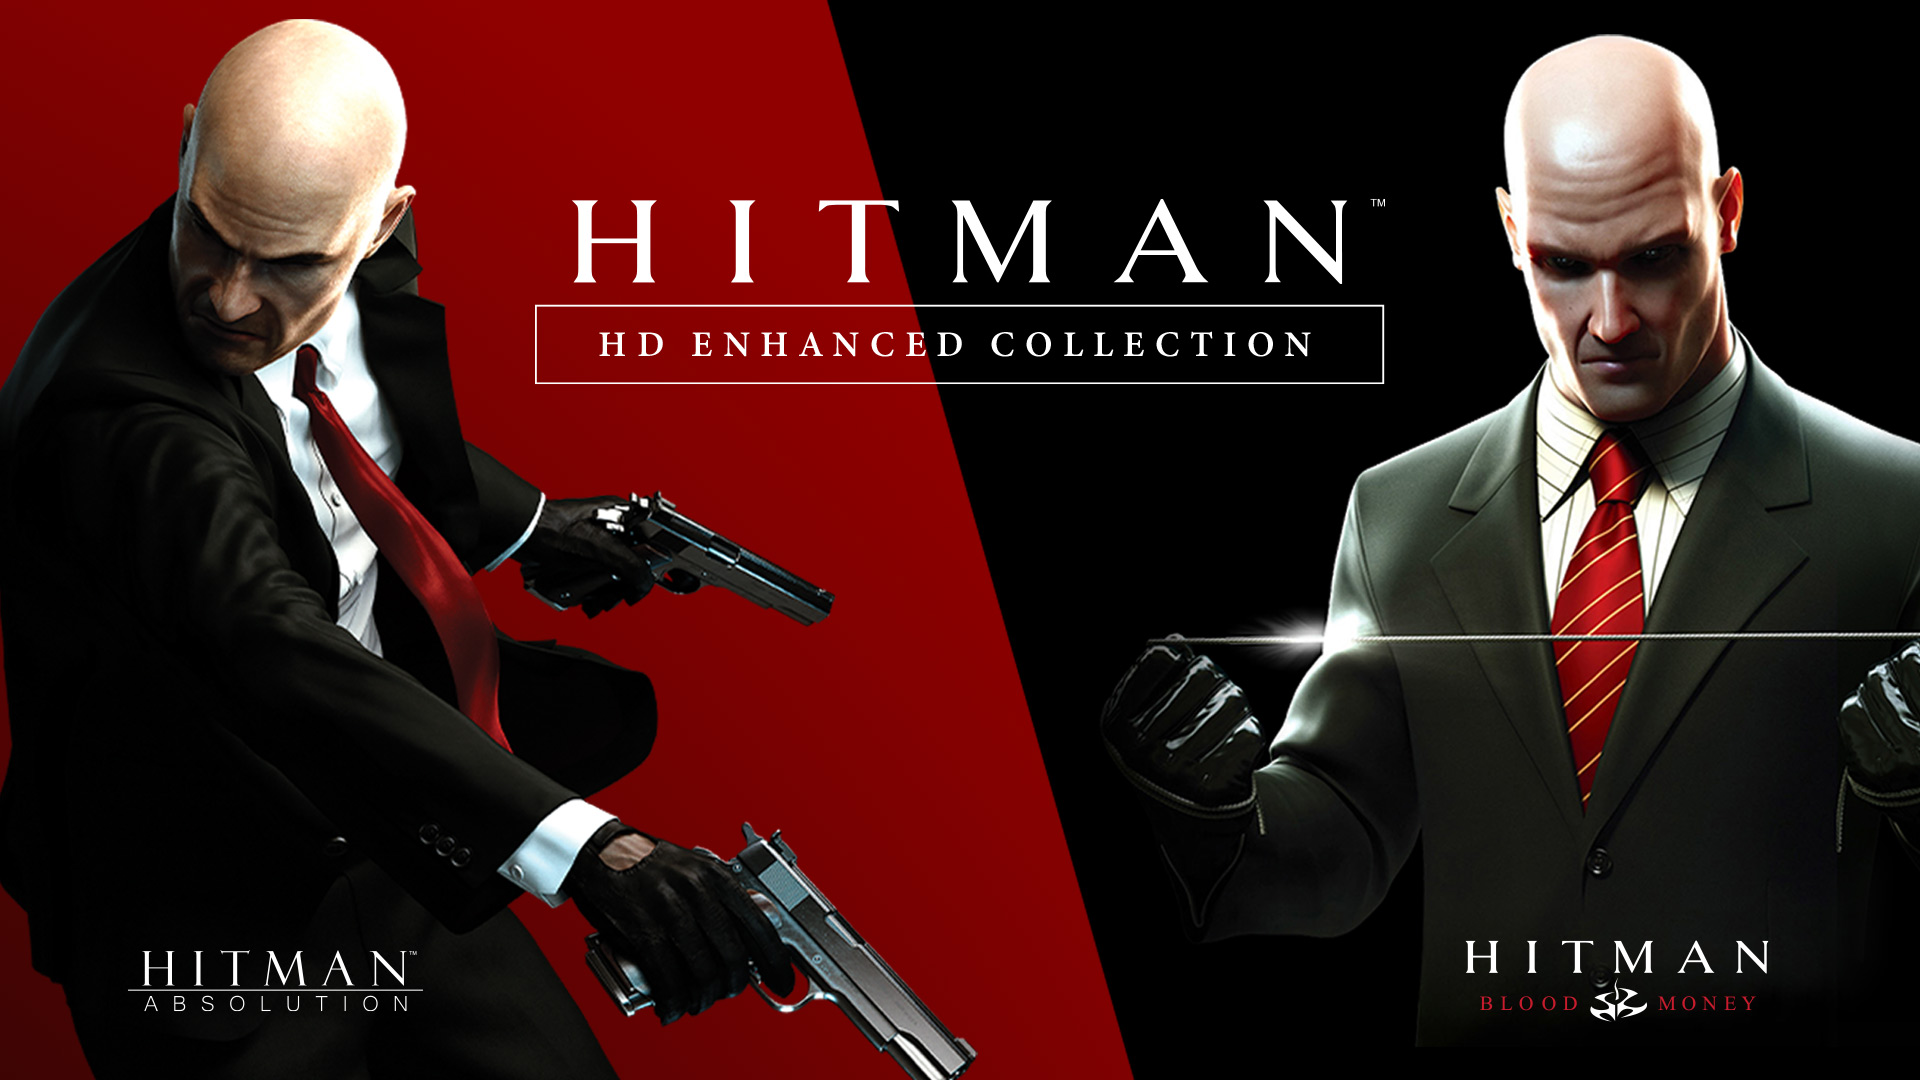 Hitman HD Enhanced Collection includes Blood Money and Absolution